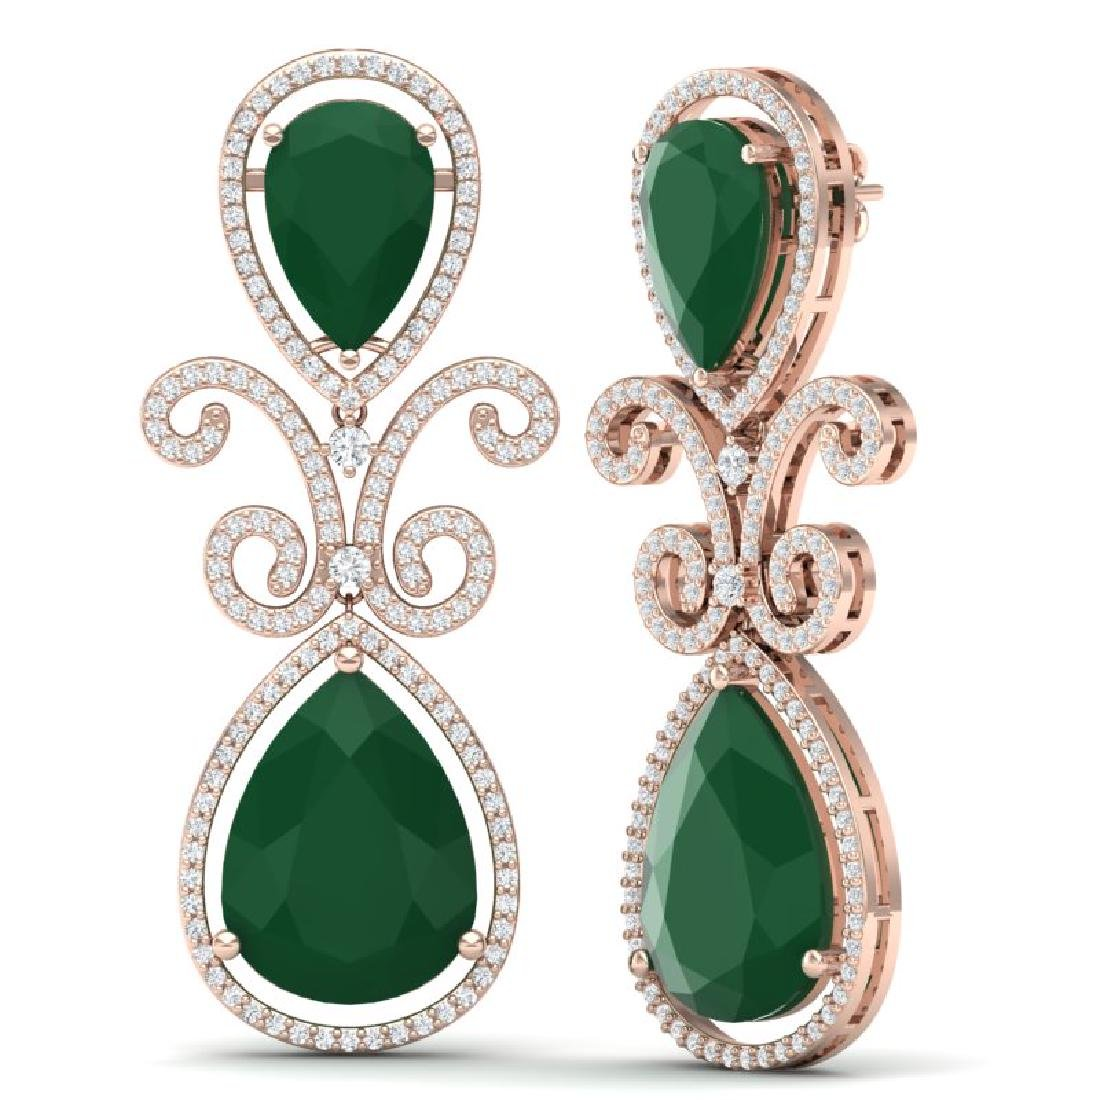 31.6 CTW Royalty Emerald & VS Diamond Earrings 18K Rose - 3